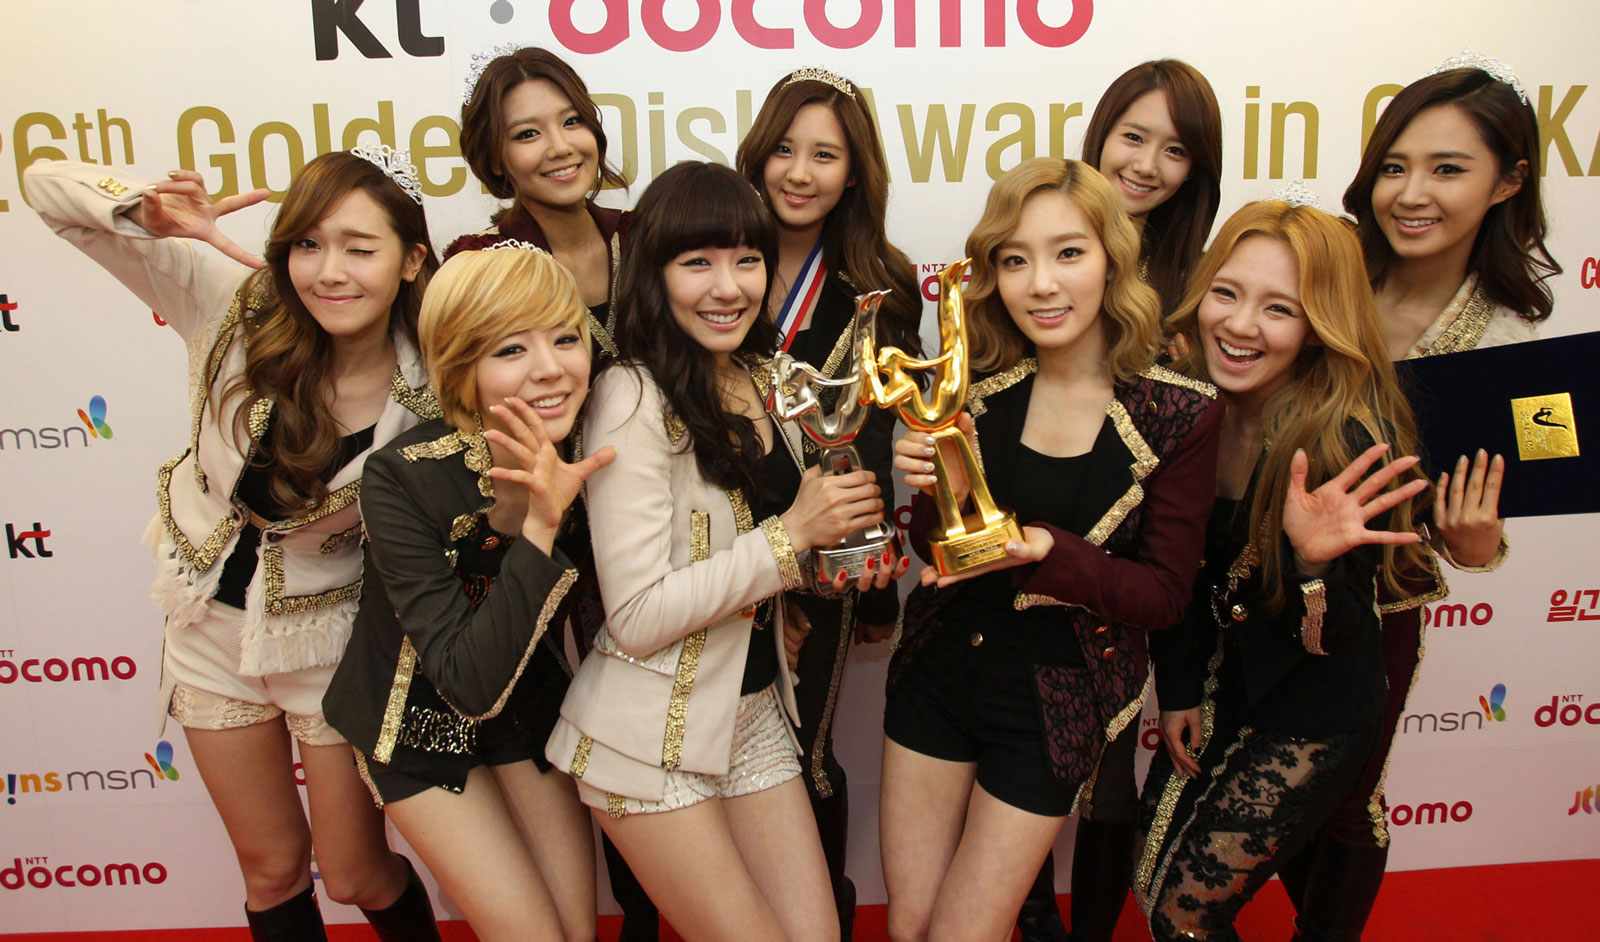 """""""The Guardian"""" Claims PSY Is a One-Hit Wonder While Girls' Generation Will Last"""